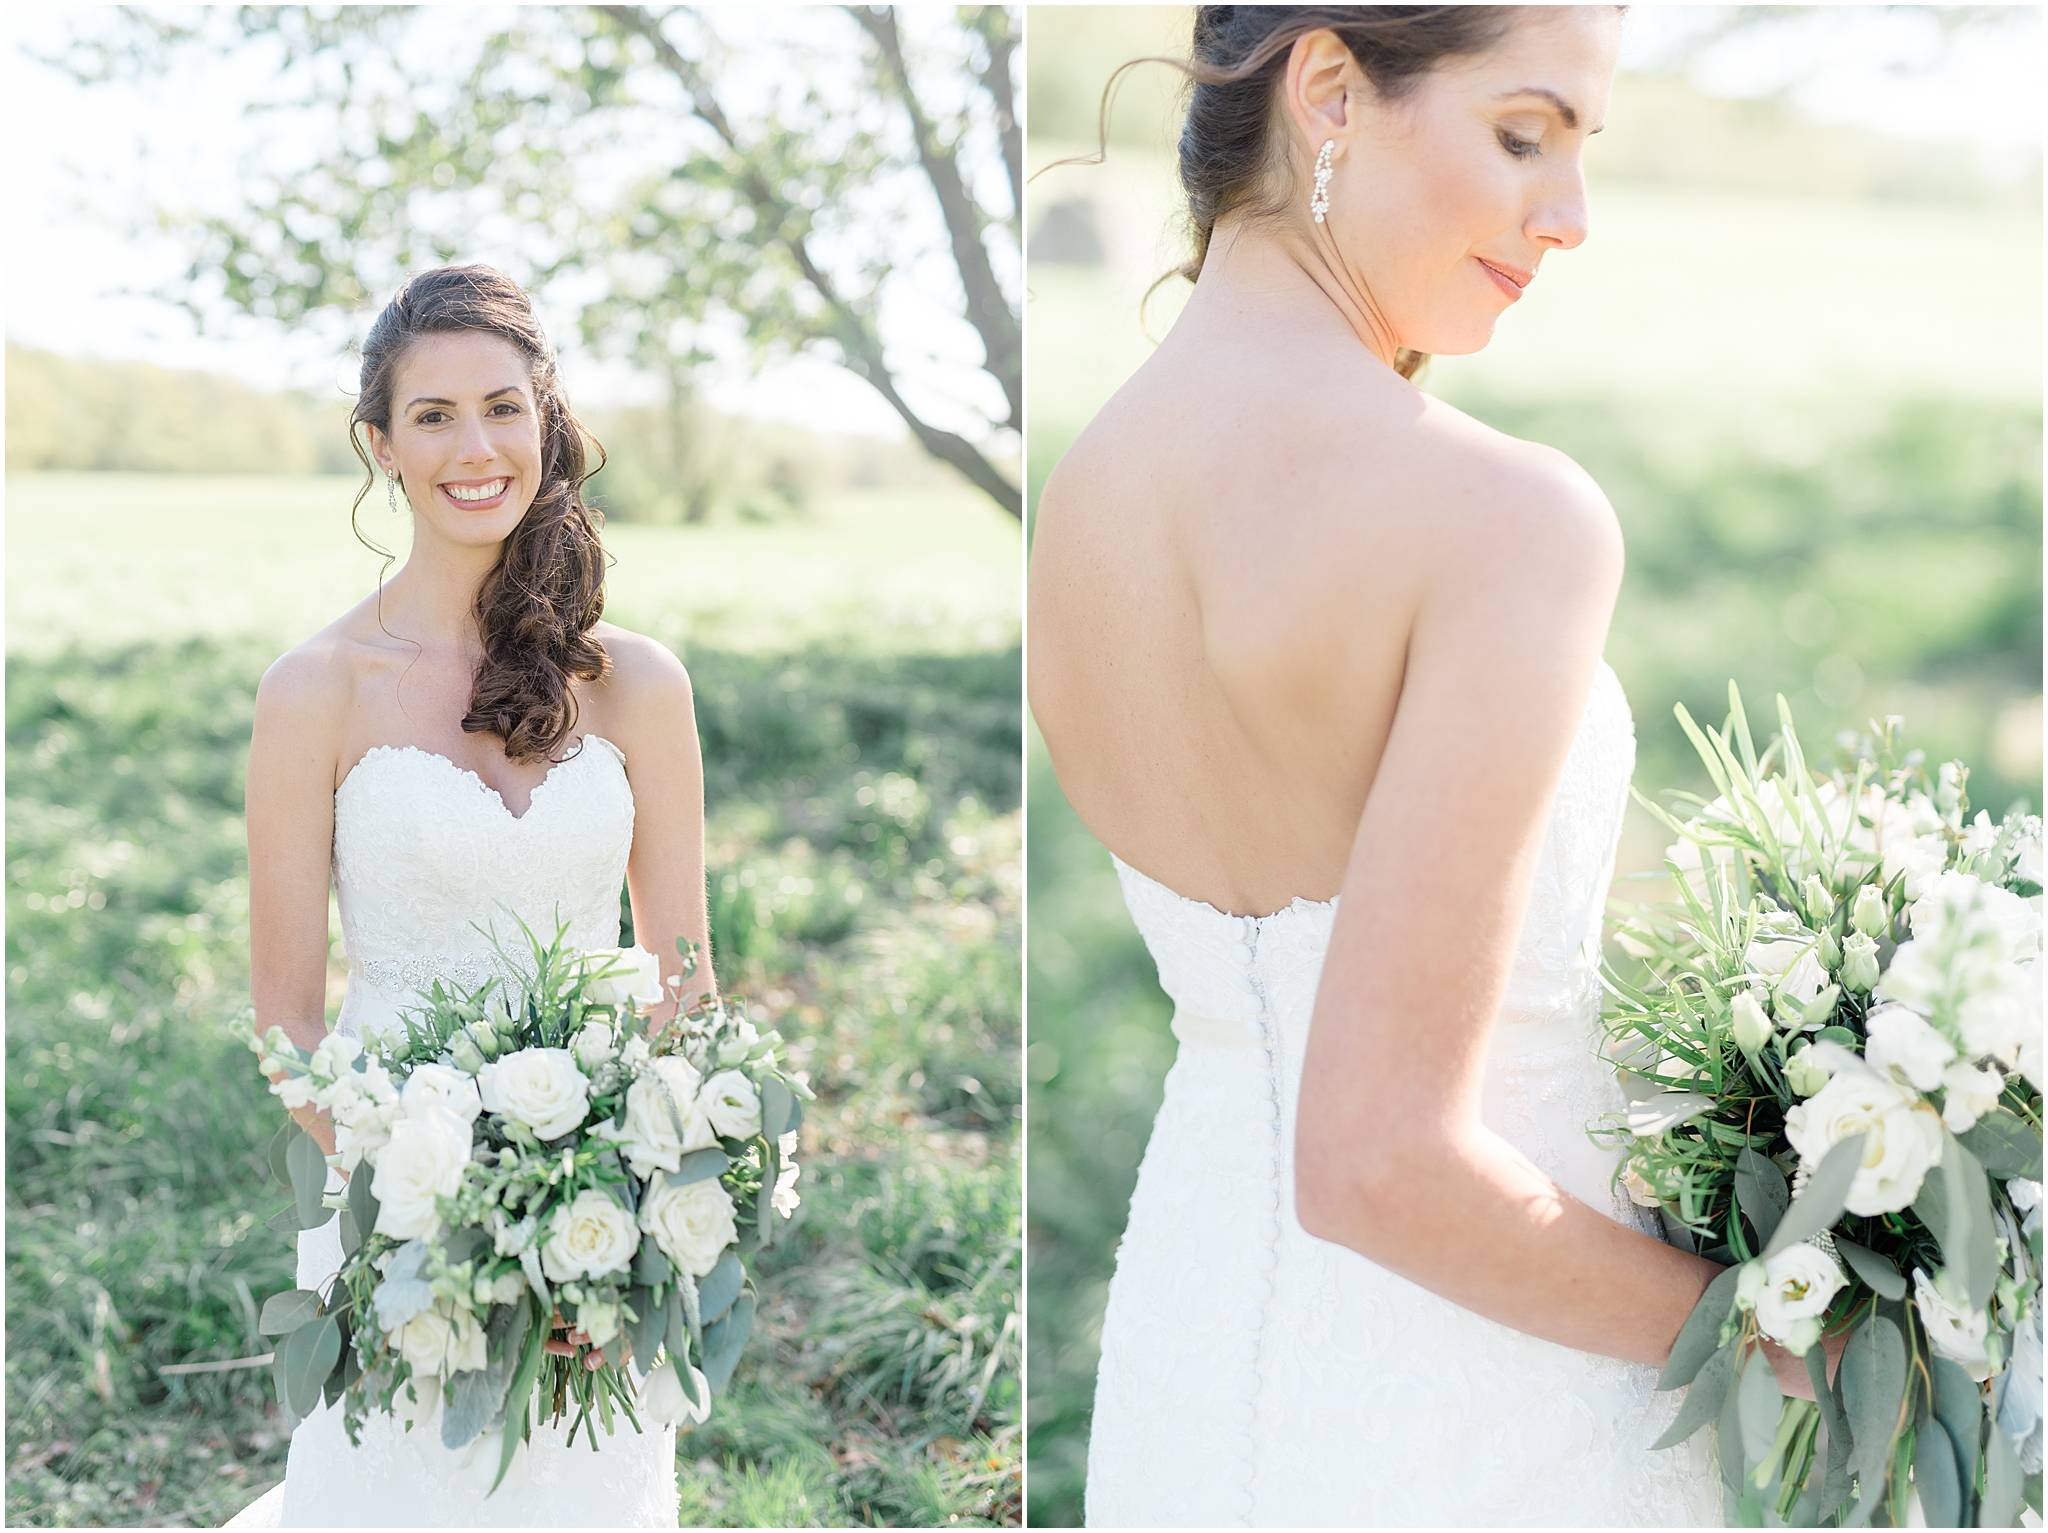 Springton Manor Farm Wedding in Chester County, PA by Philadelphia Wedding Photographer Olivia Rae Photography